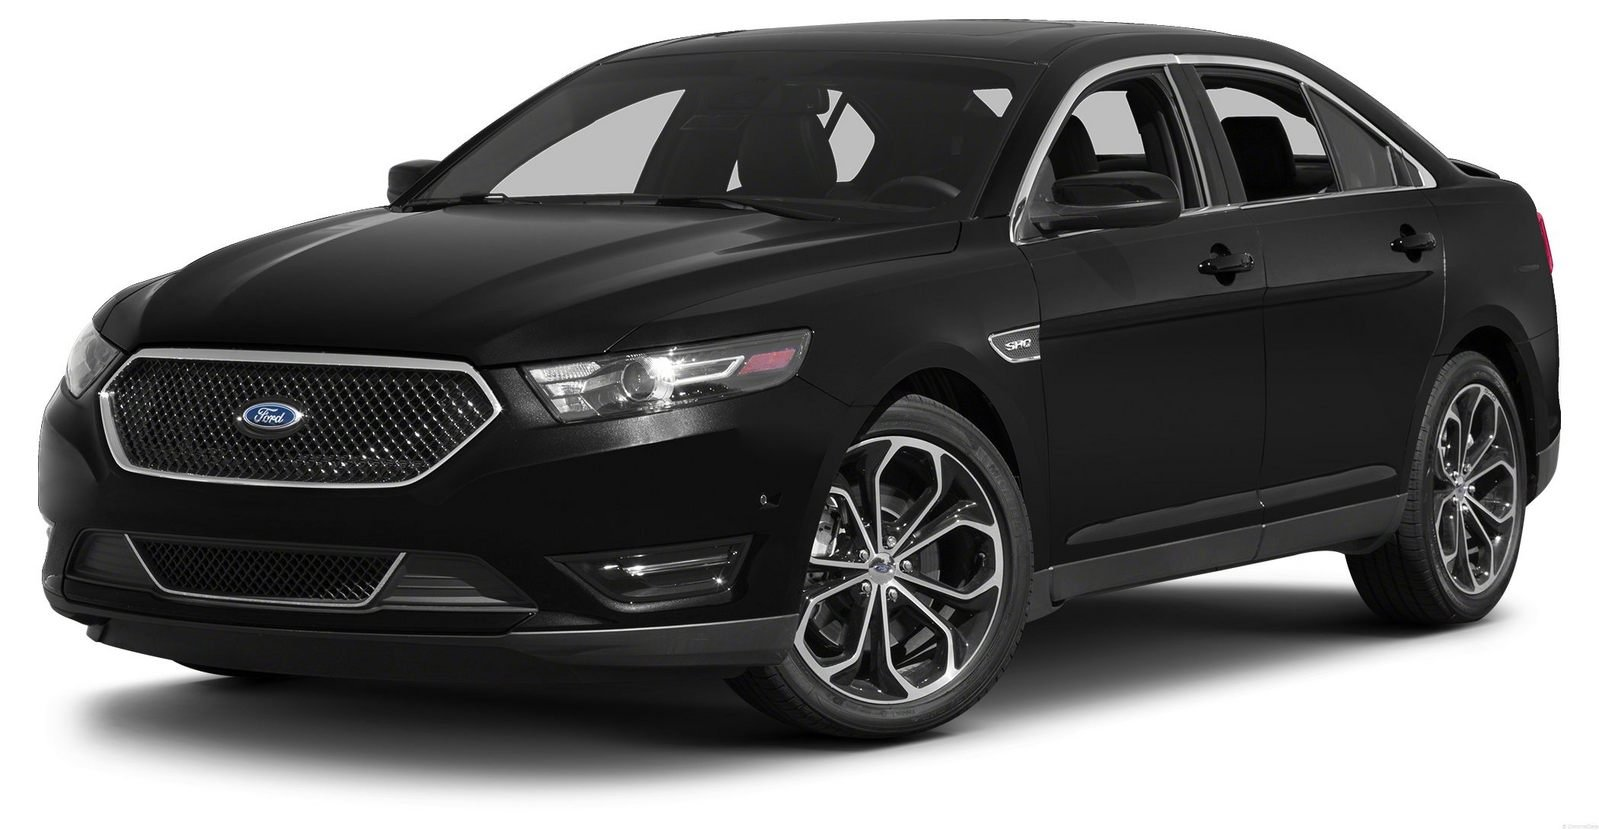 2014 ford taurus sho picture 524248 car review top speed. Black Bedroom Furniture Sets. Home Design Ideas